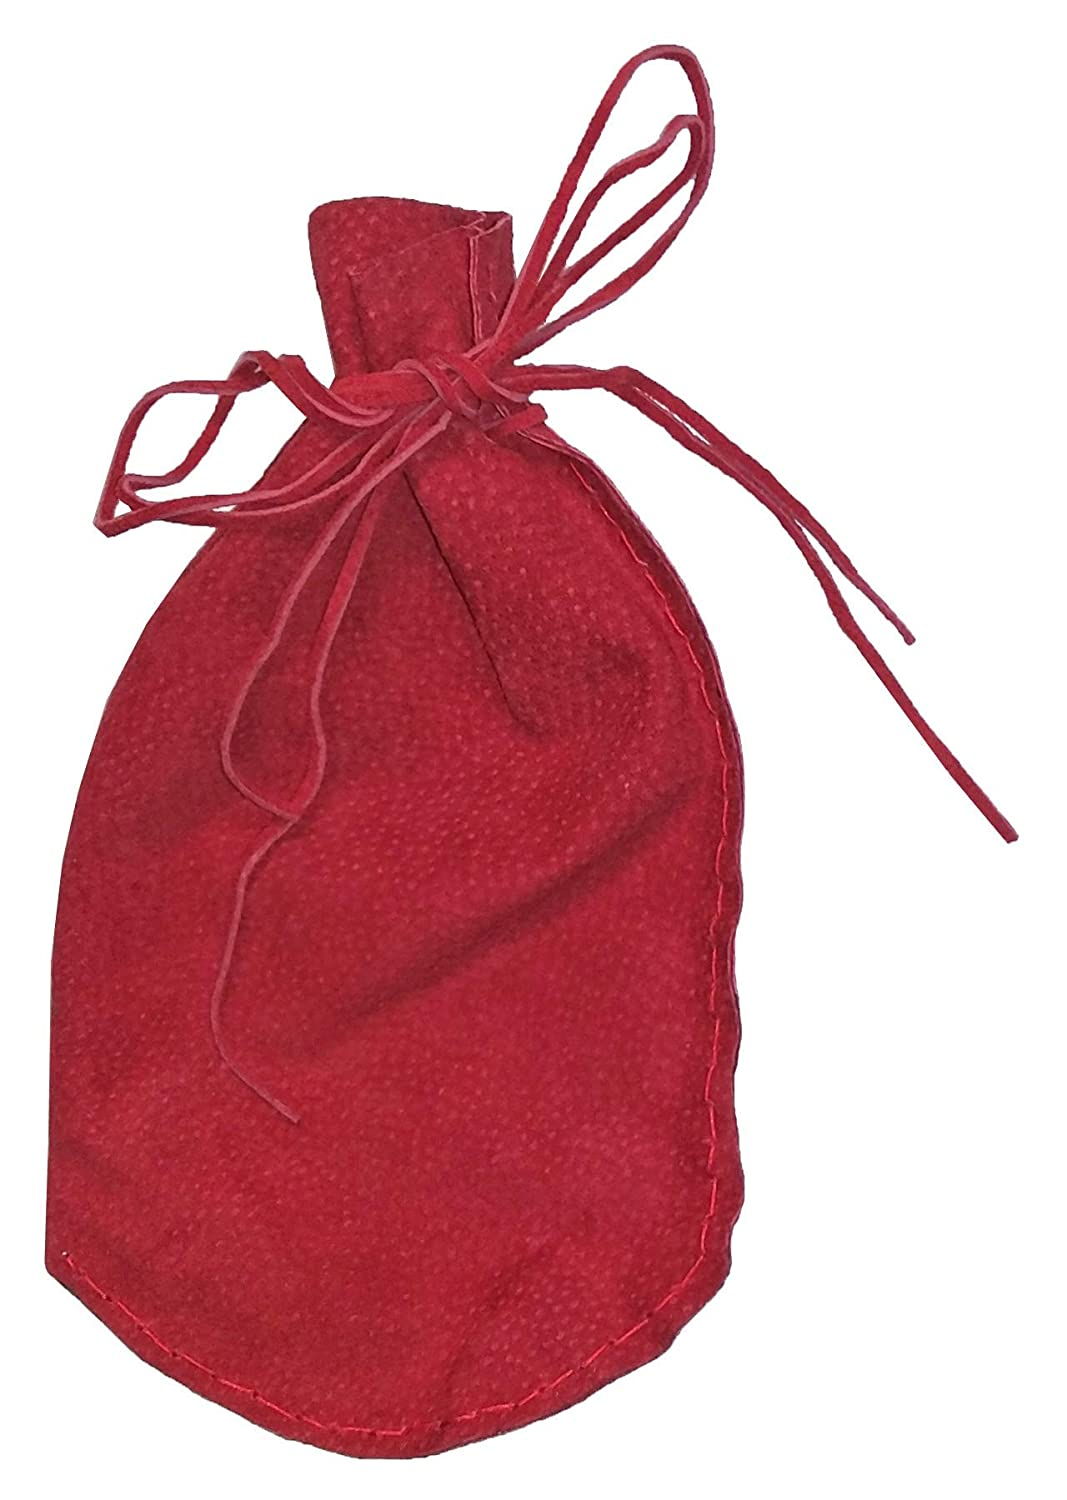 Pouch Drawstring Pitted Suede 5 X 7.5 Inches, Red